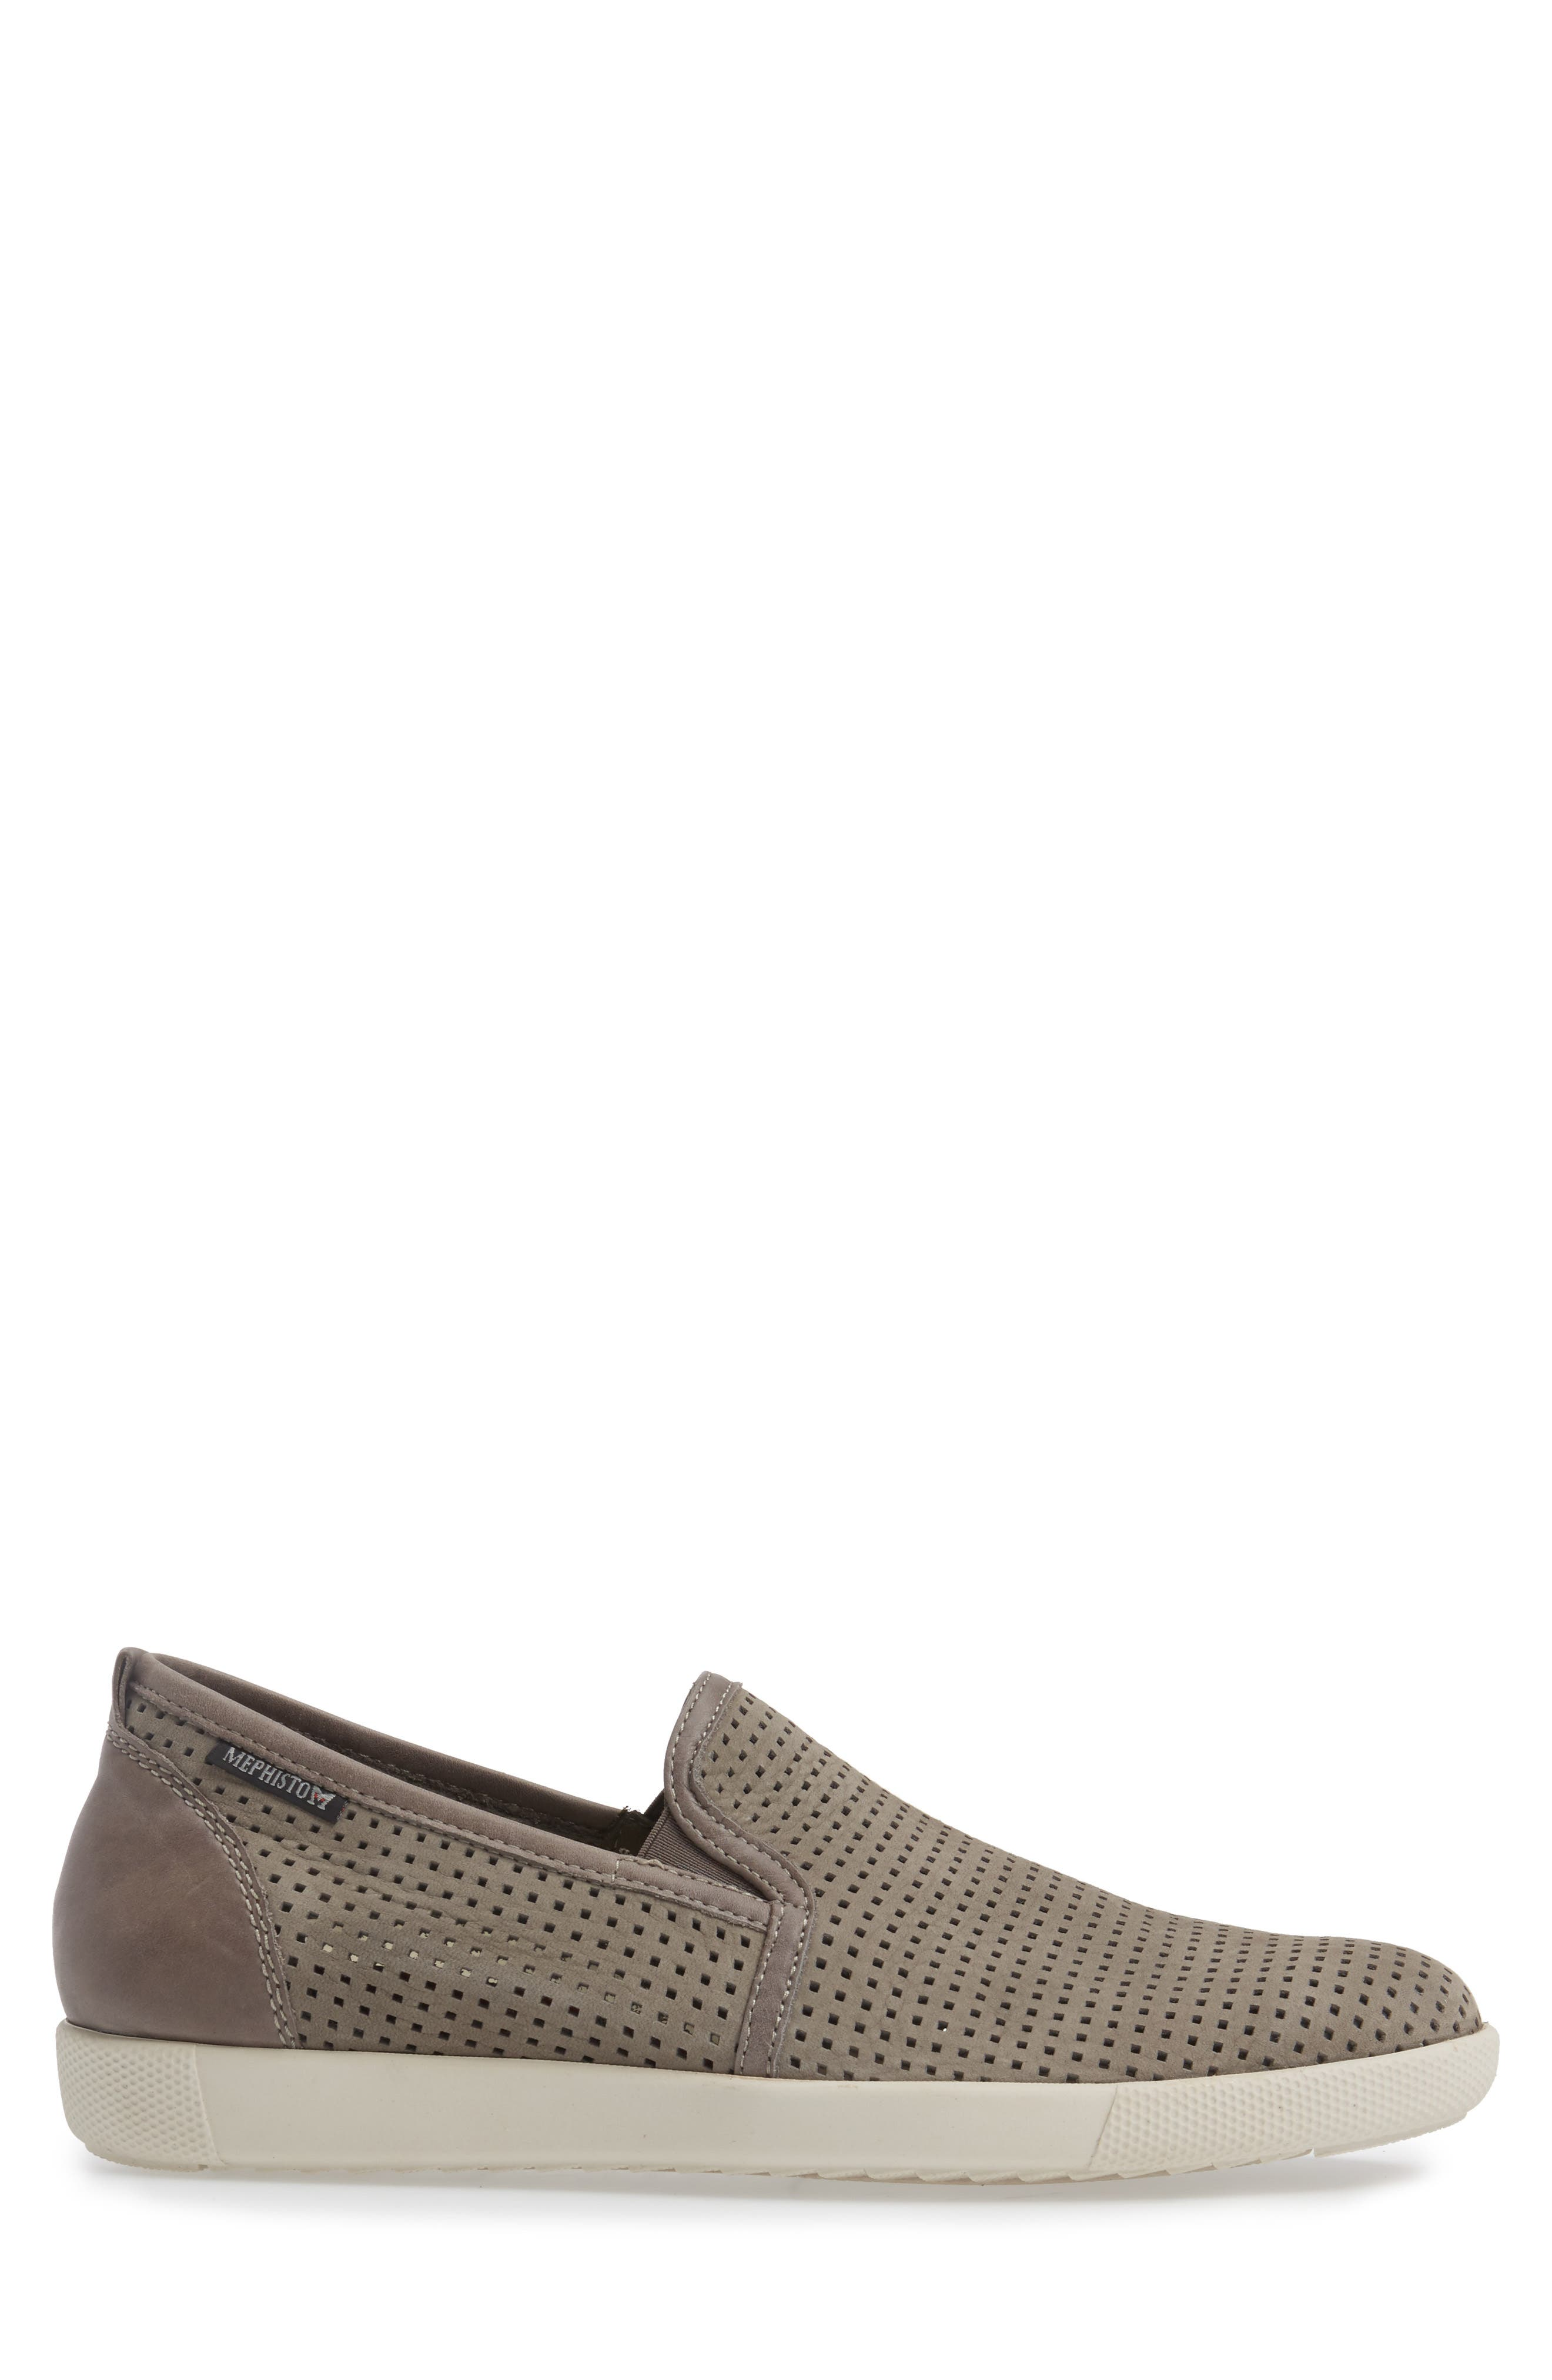 'Ulrich' Perforated Leather Slip-On,                             Alternate thumbnail 3, color,                             Light Grey Sportbuck